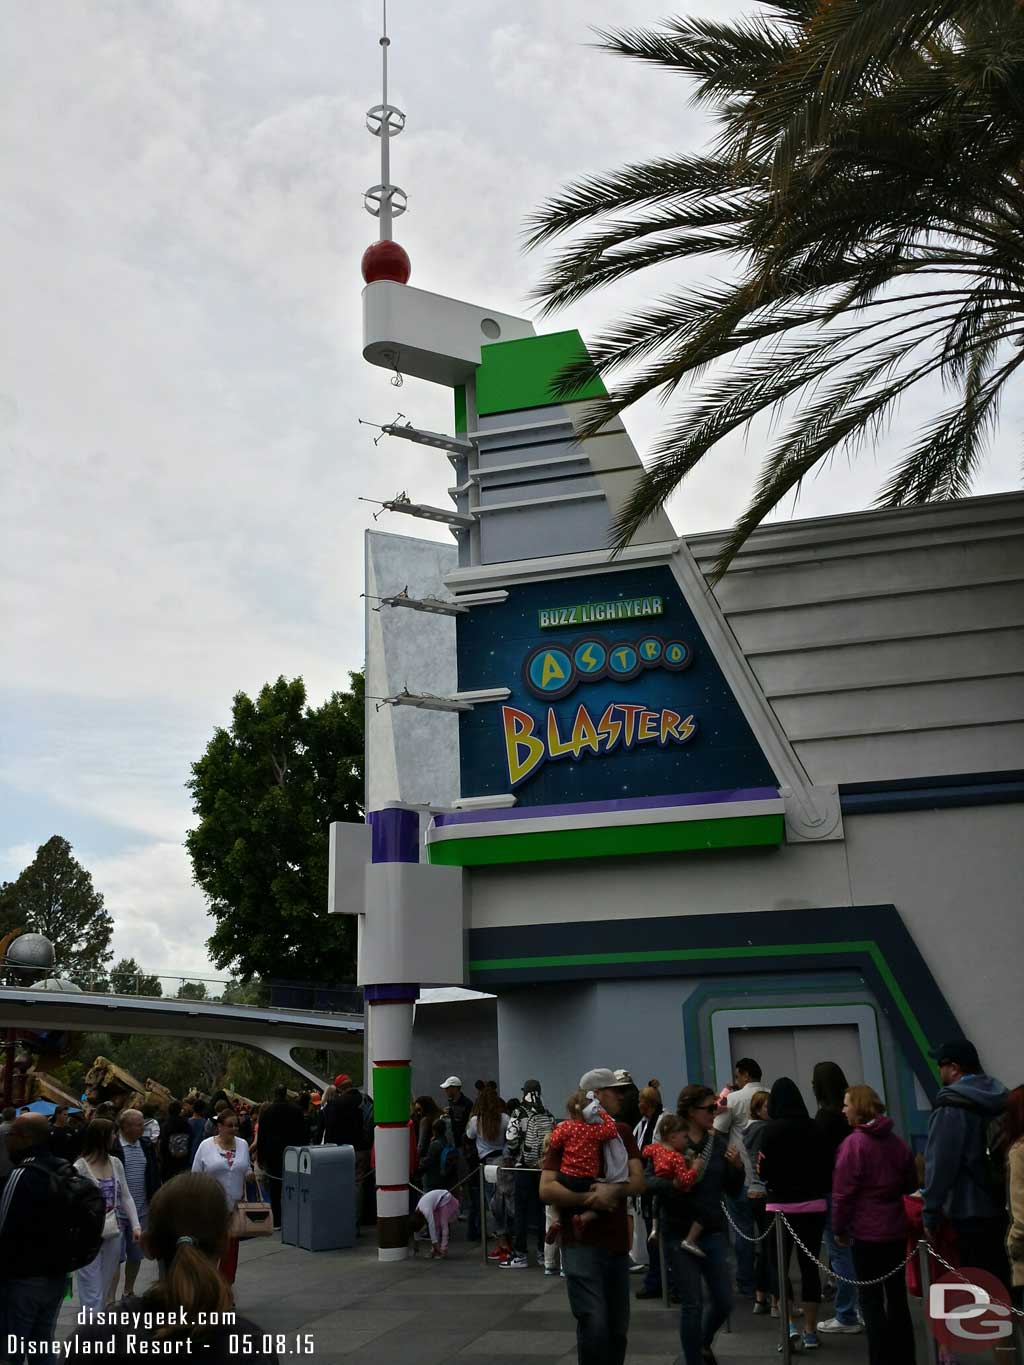 Buzz Lightyear has a new color scheme #Disneyland